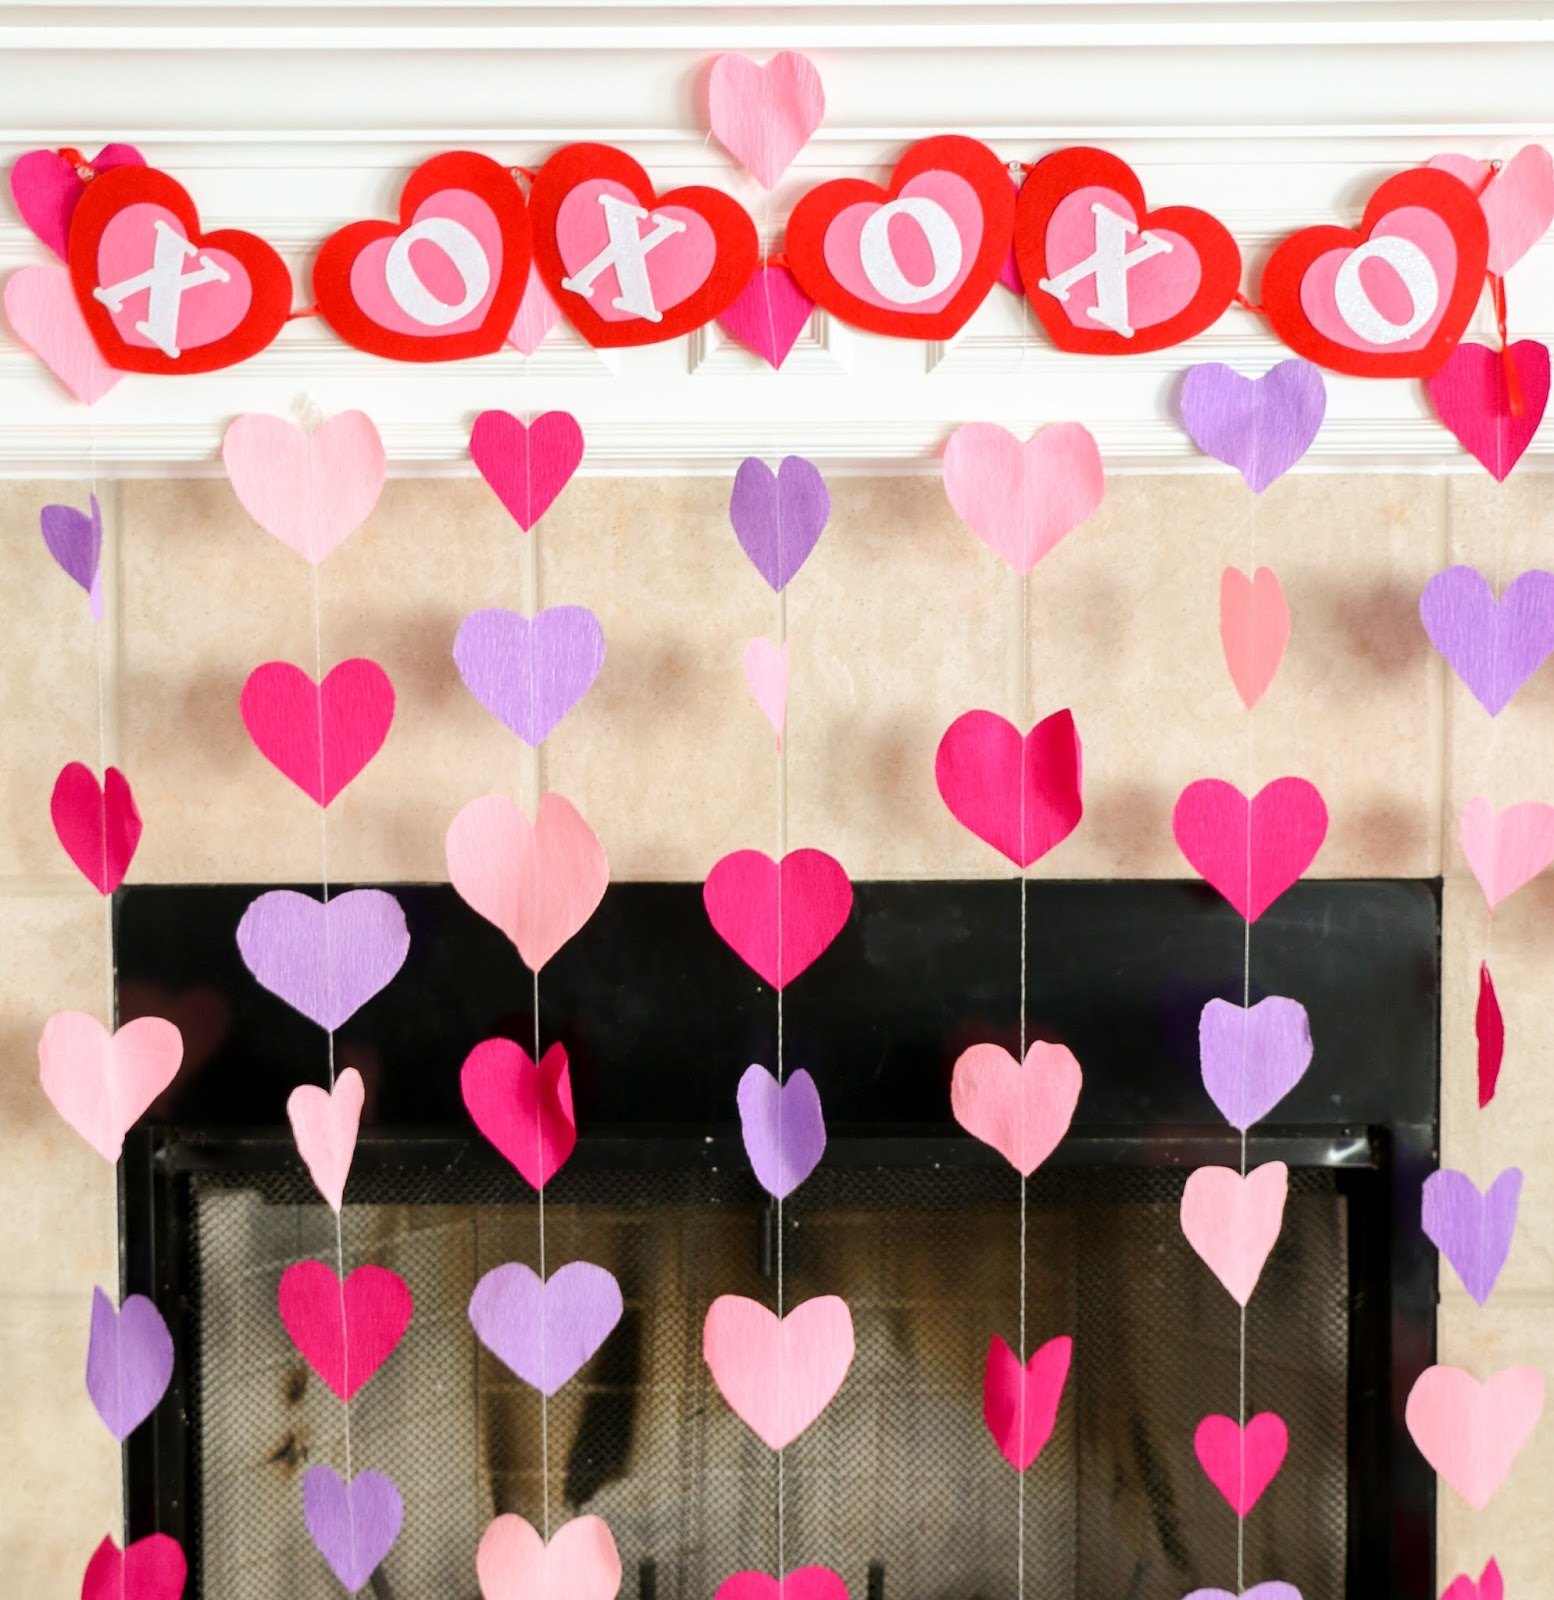 Home Decoration Ideas With Paper: Crepe Paper Heart Decorations